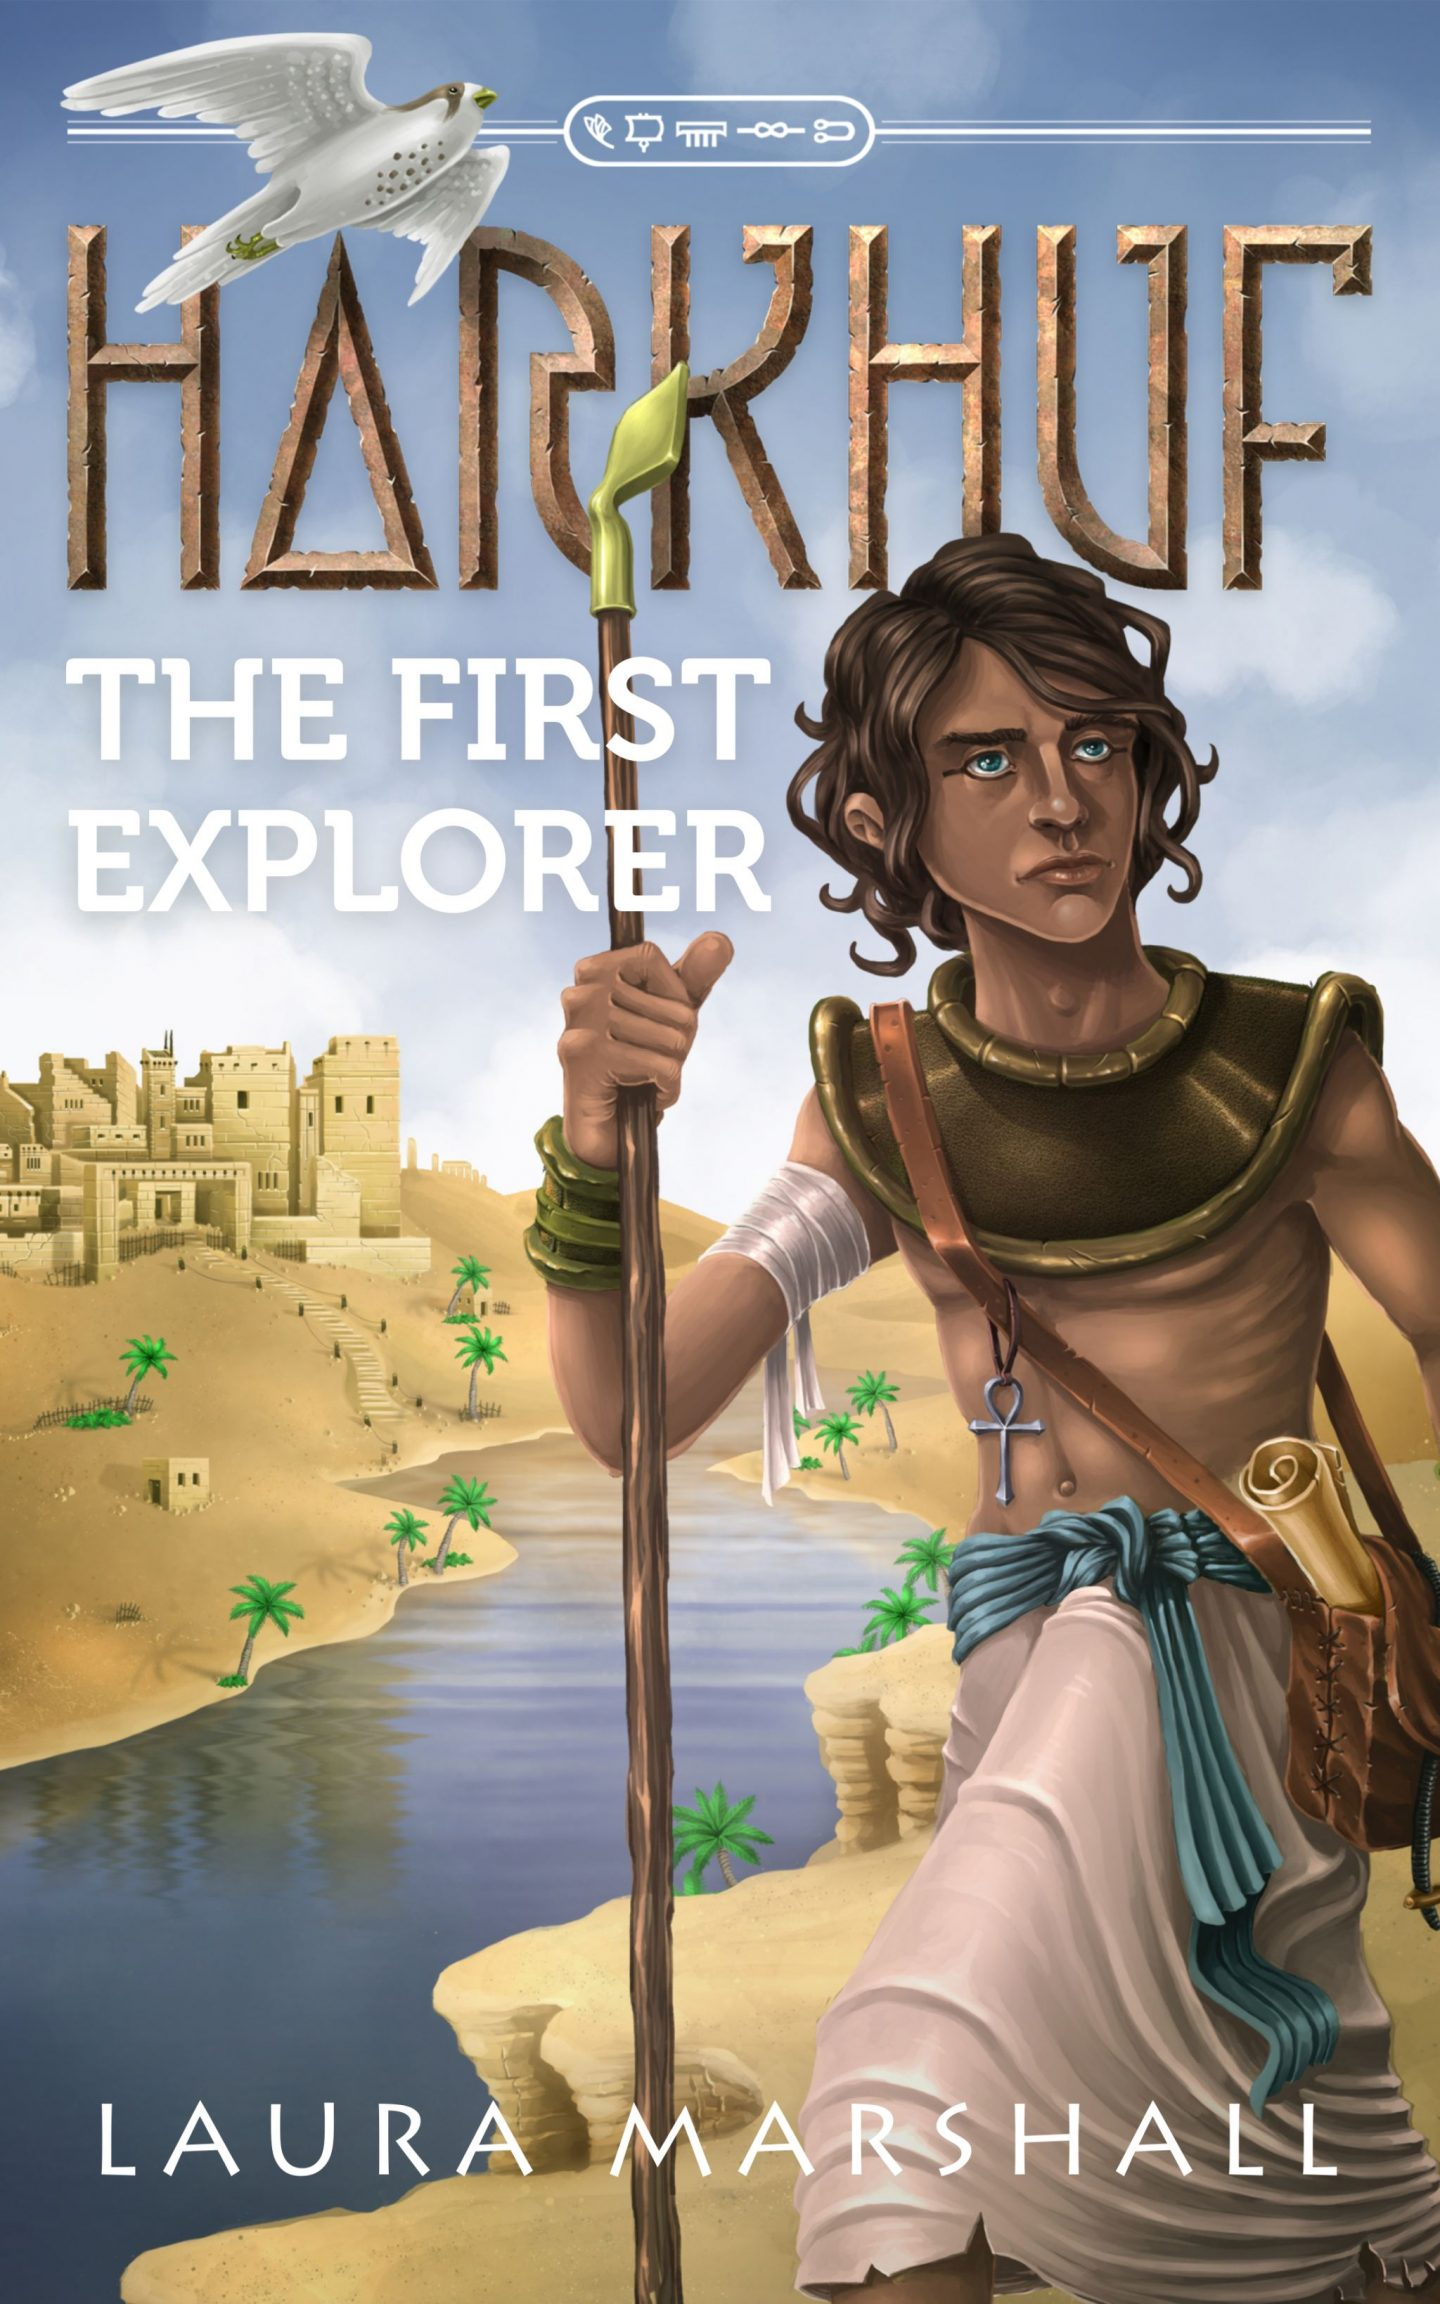 Harkhuf: The new hero in children's fiction